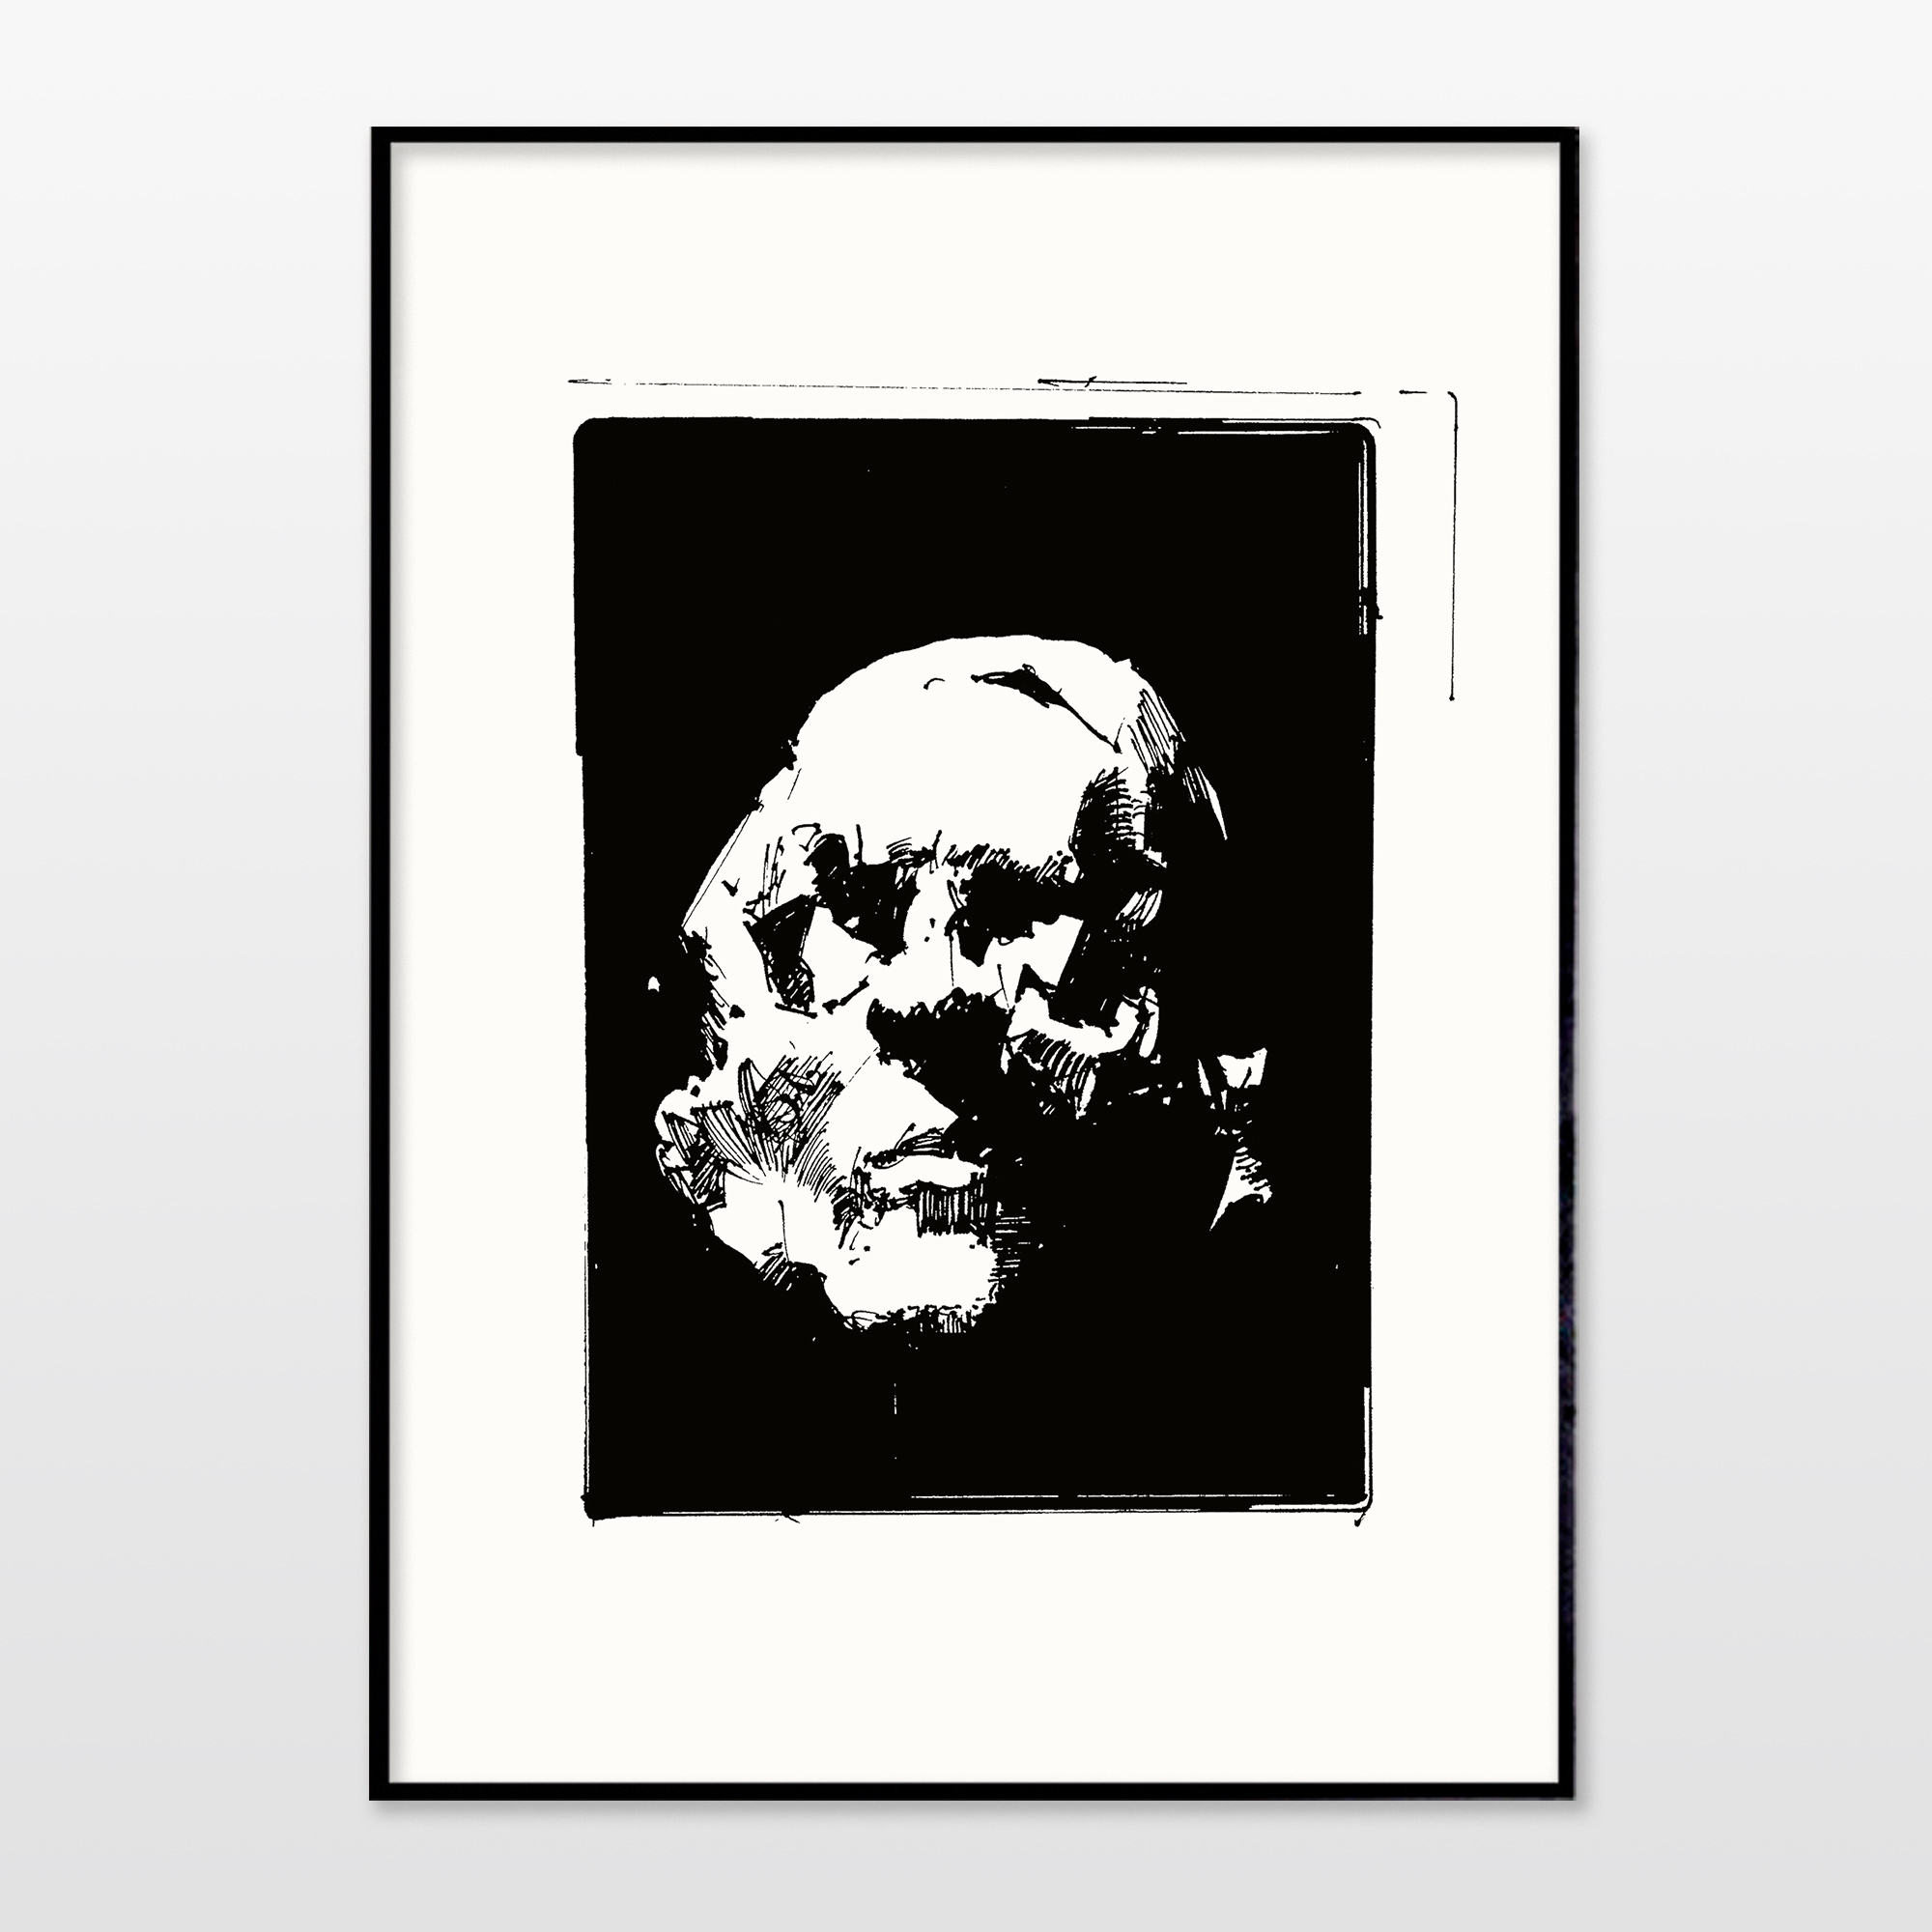 posters-prints, giclee-print, abstract, expressive, monochrome, portraiture, people, black, white, ink, paper, black-and-white, contemporary-art, danish, decorative, design, expressionism, faces, interior, interior-design, modern, modern-art, nordic, posters, prints, Buy original high quality art. Paintings, drawings, limited edition prints & posters by talented artists.